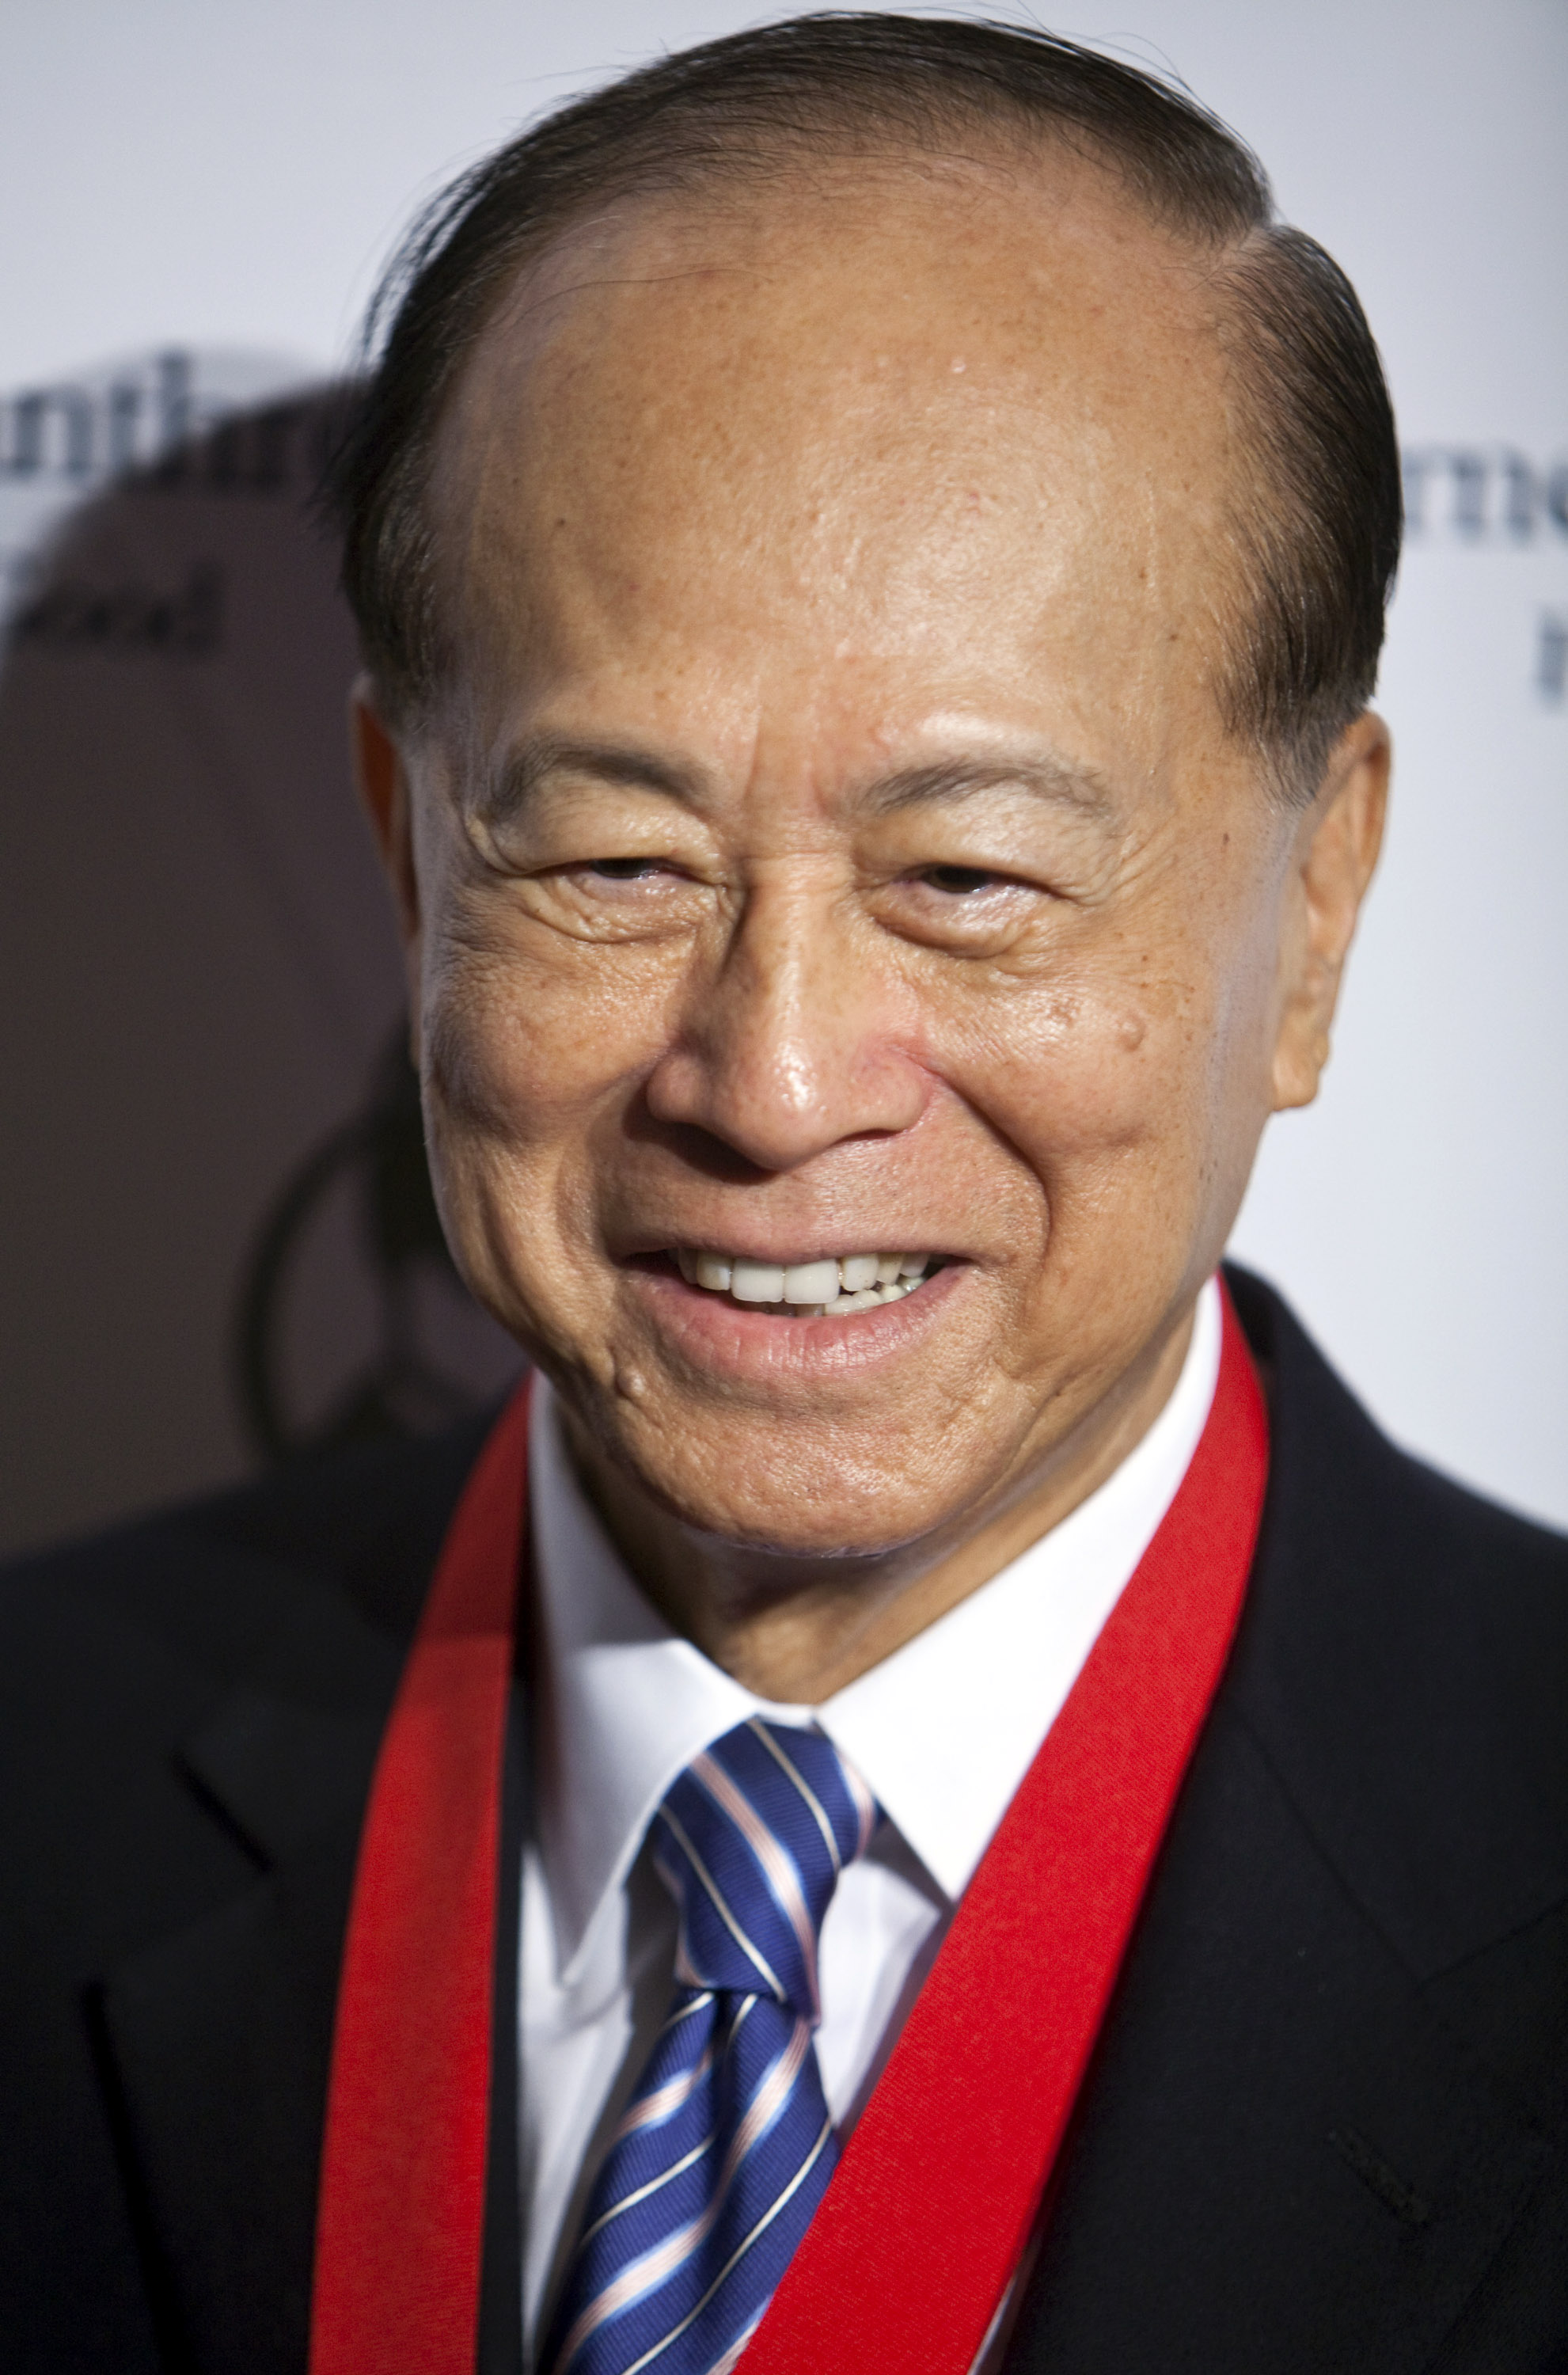 Li Ka-shing stands for a photo during the Carnegie Medal of Philanthropy award ceremony in New York on Thursday, October 20, 2011.